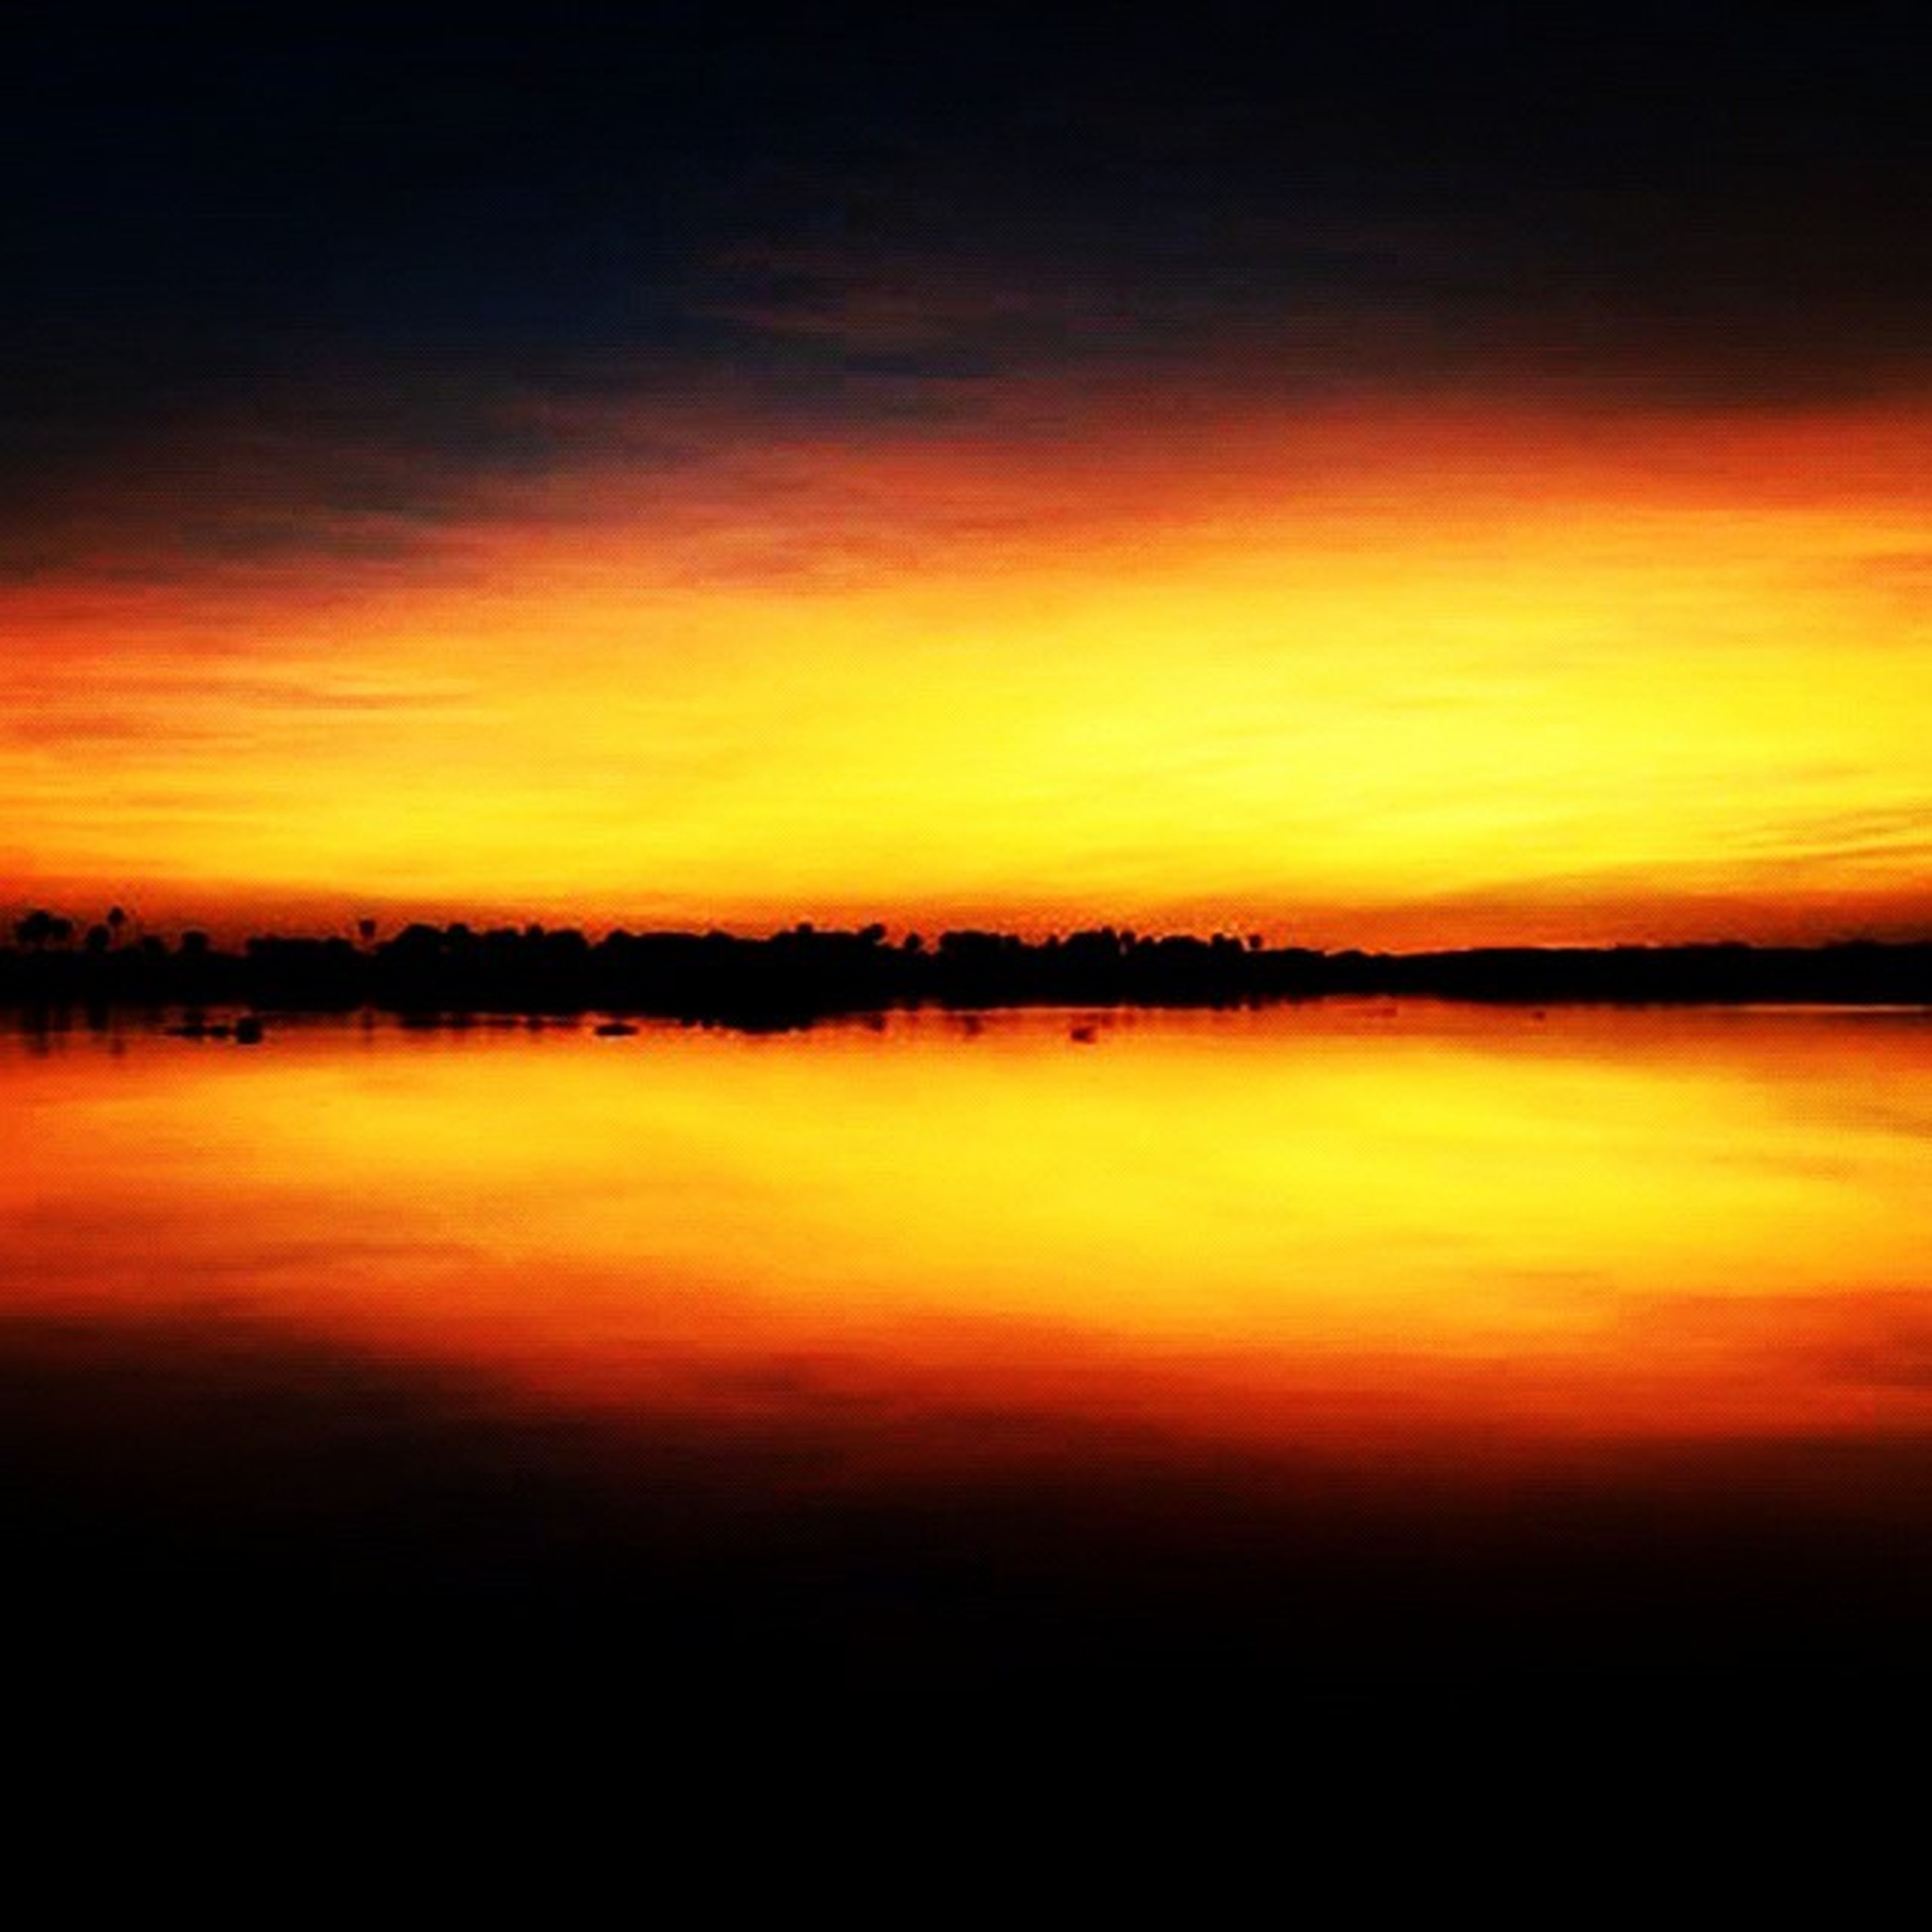 sunset, orange color, scenics, tranquil scene, tranquility, beauty in nature, sky, water, idyllic, lake, nature, cloud - sky, reflection, dramatic sky, silhouette, dusk, waterfront, calm, cloud, outdoors